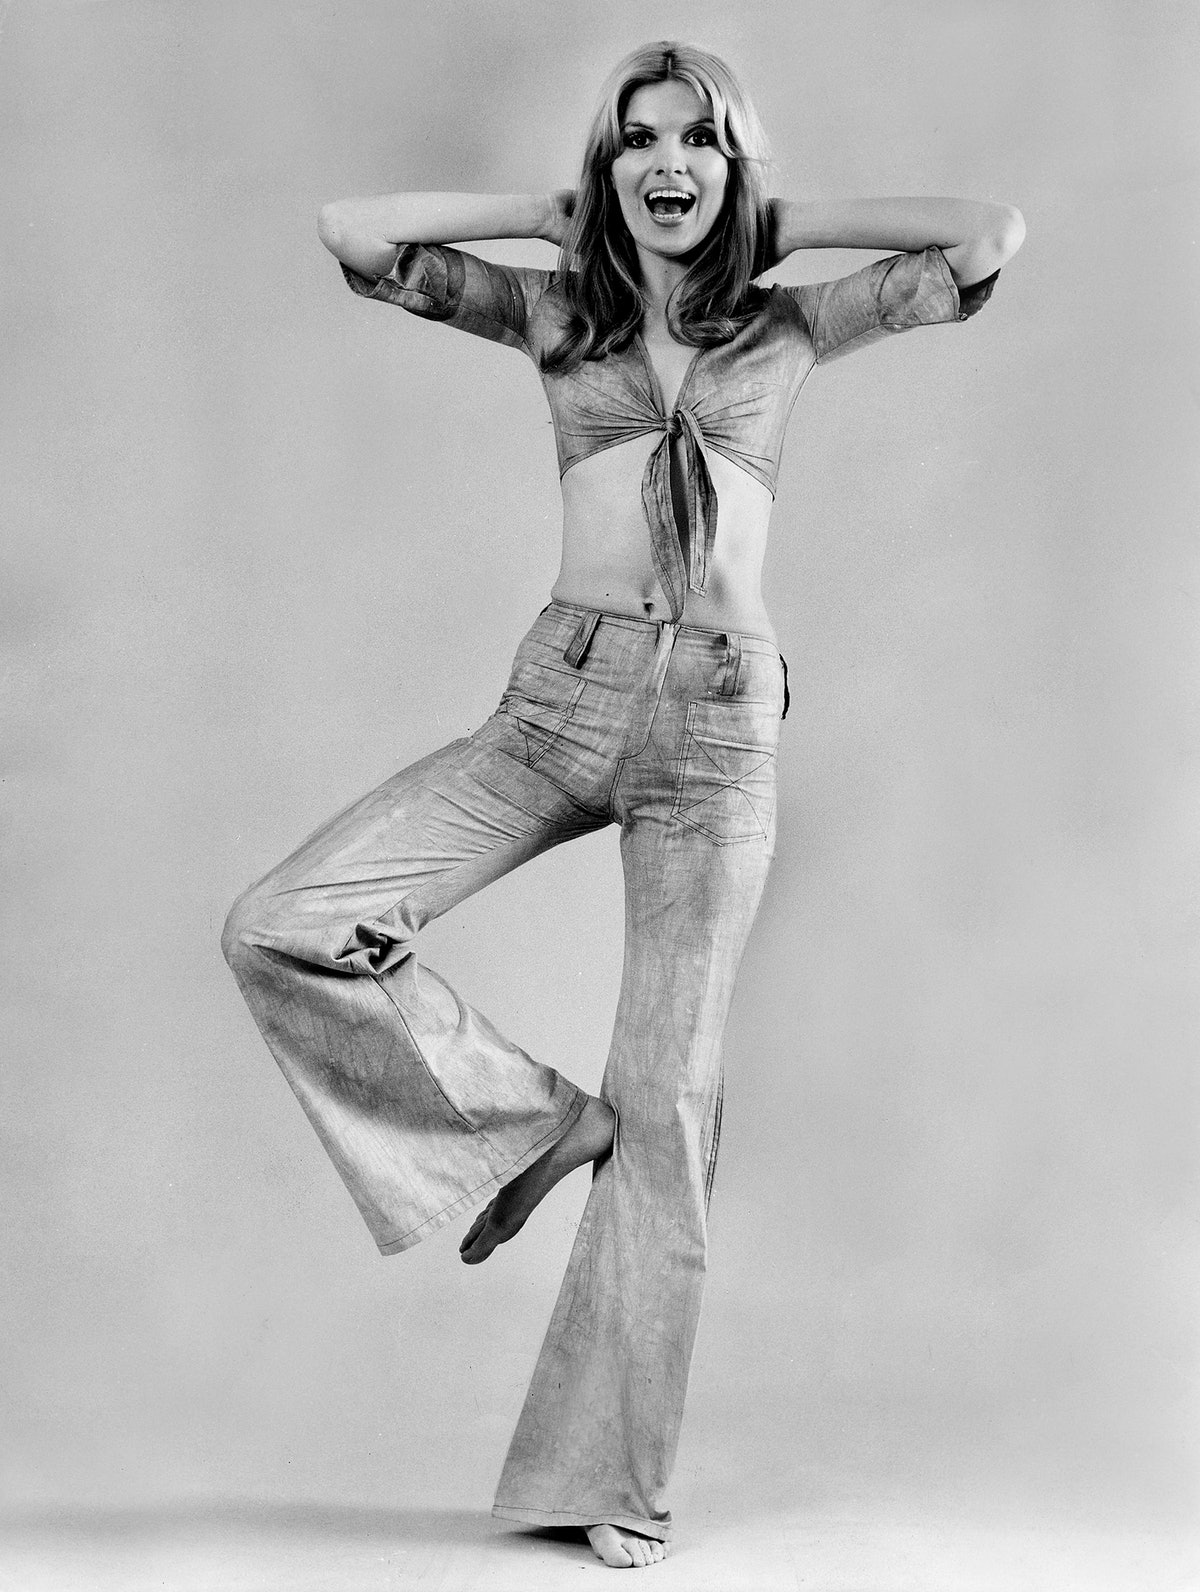 A woman wears flared jeans and a tie-front top in an advertisement in the 1970s, Germany.